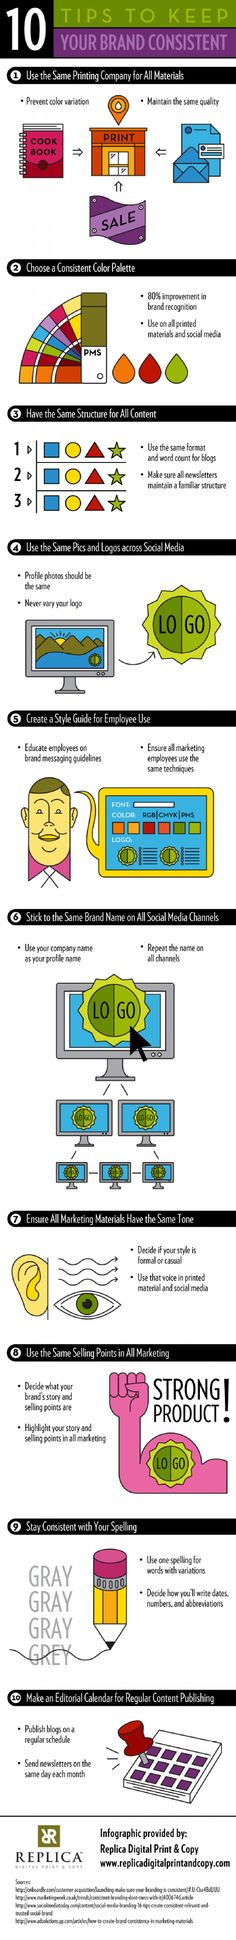 10 Tips to Keep Your Brand Consistent